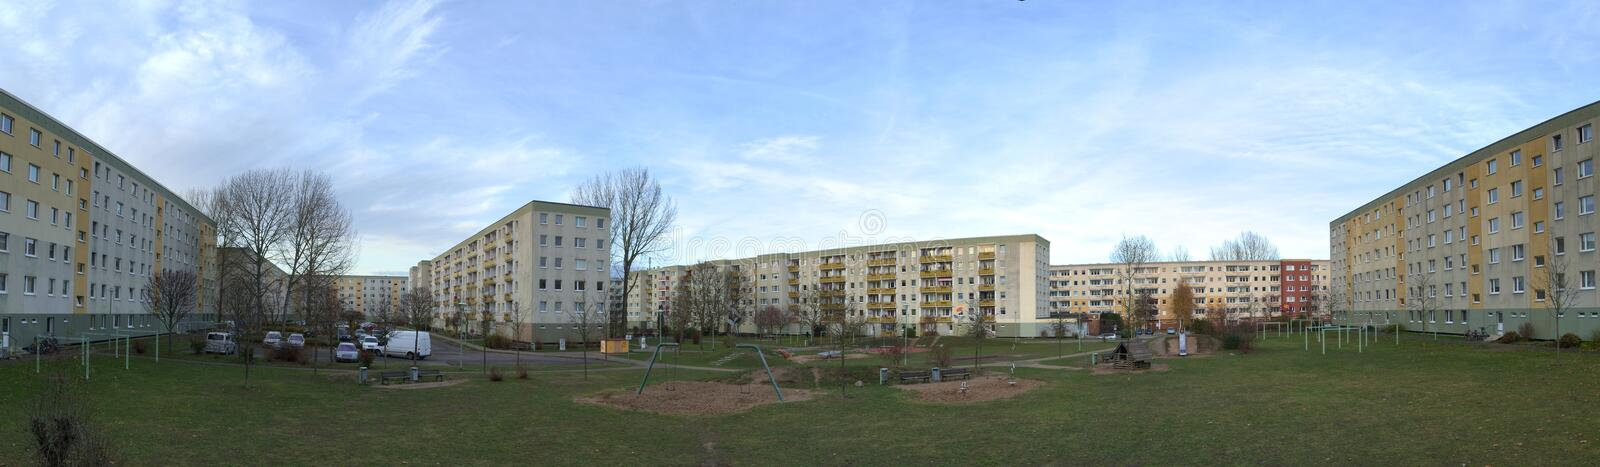 Backyard of Plattenbau complex with playground and parking lot in Greifswald, Germany.  stock image